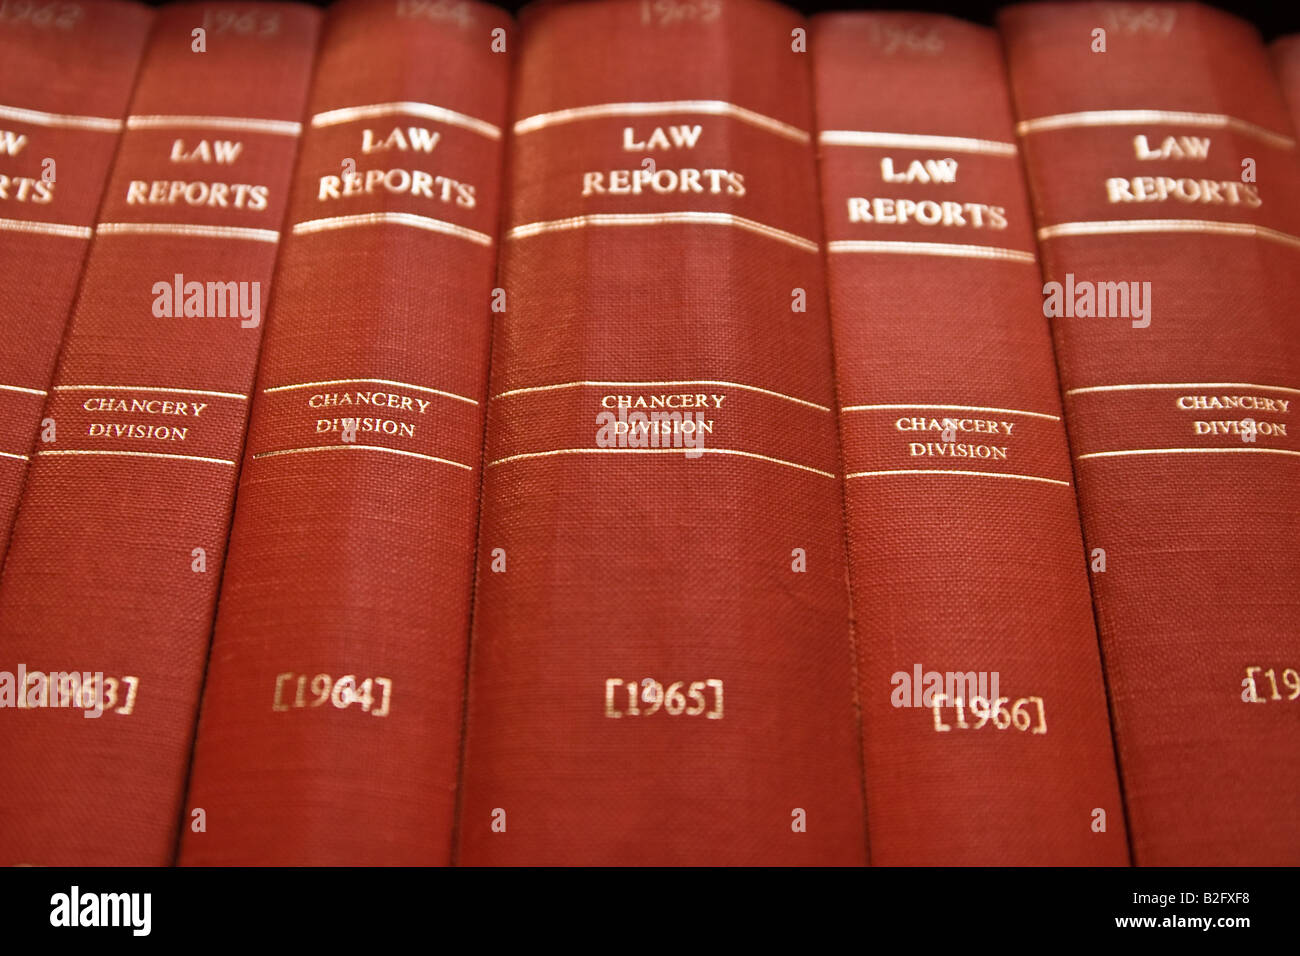 Law Reports books on shelf - Stock Image